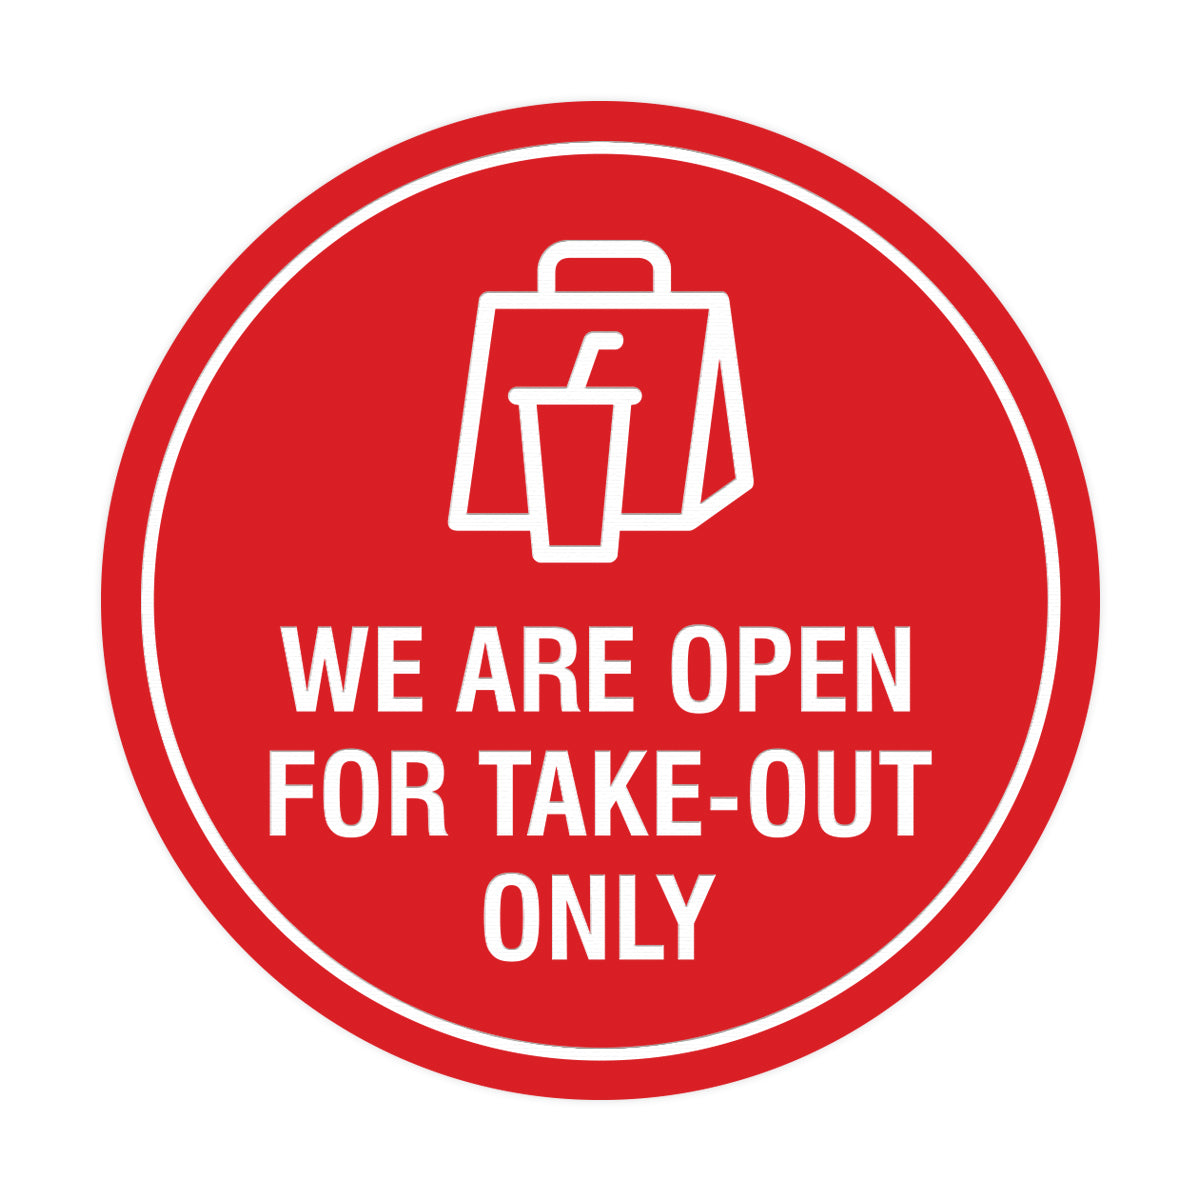 Circle We Are Open For Take-Out Only Sign